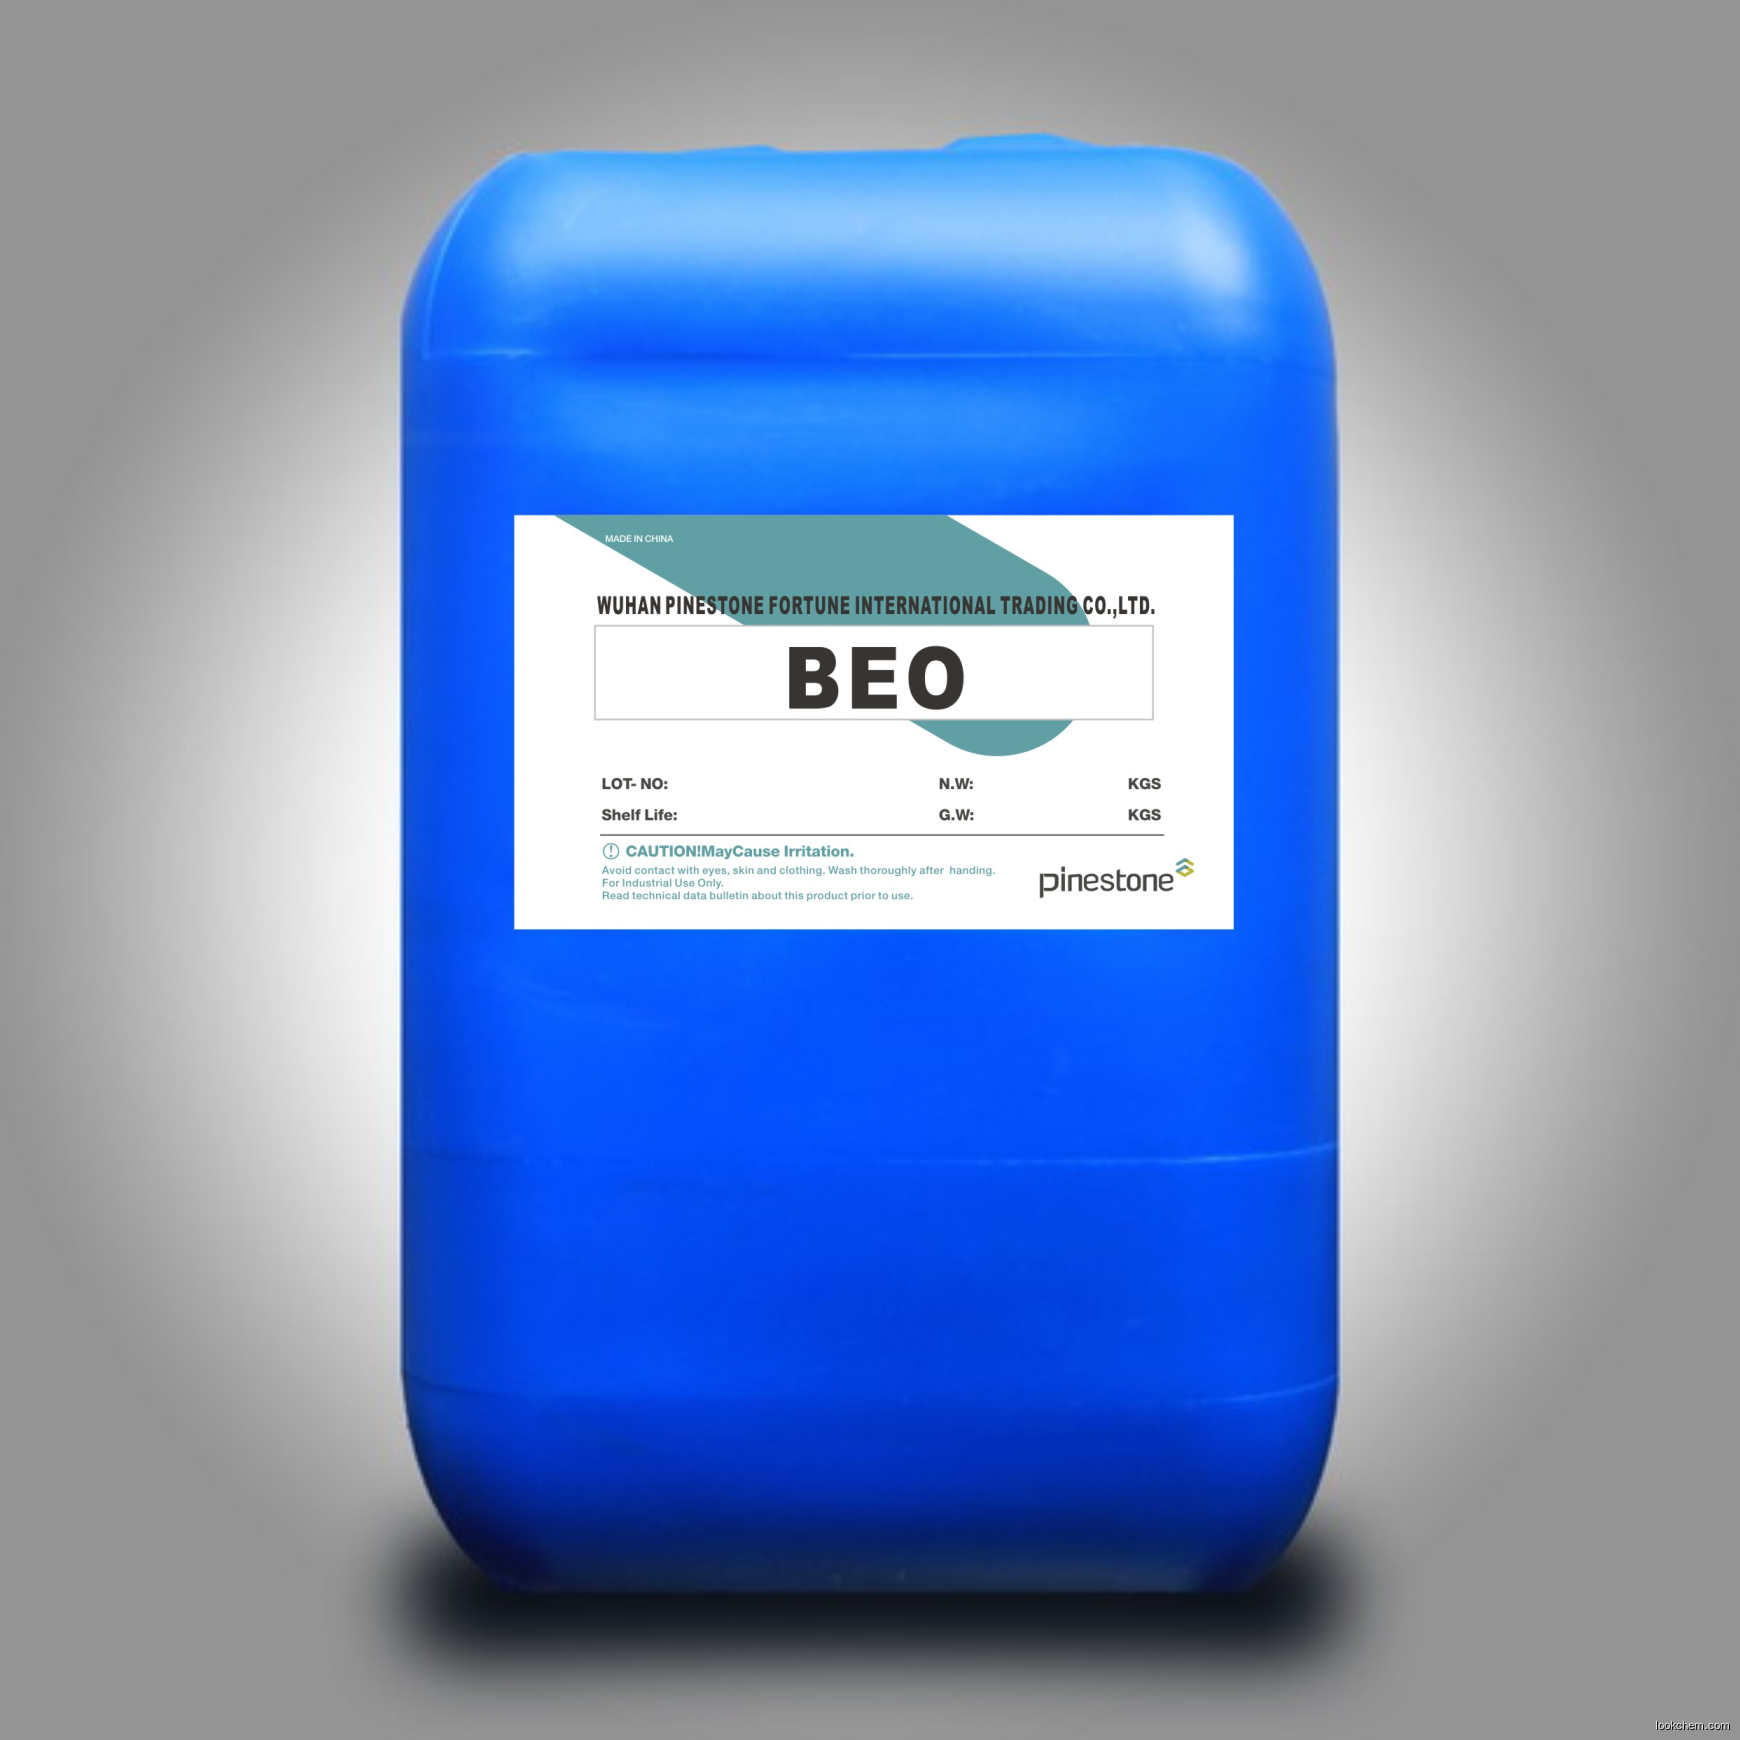 Butynediol propoxylate BEO 9 CAS No.: 1606-85-5